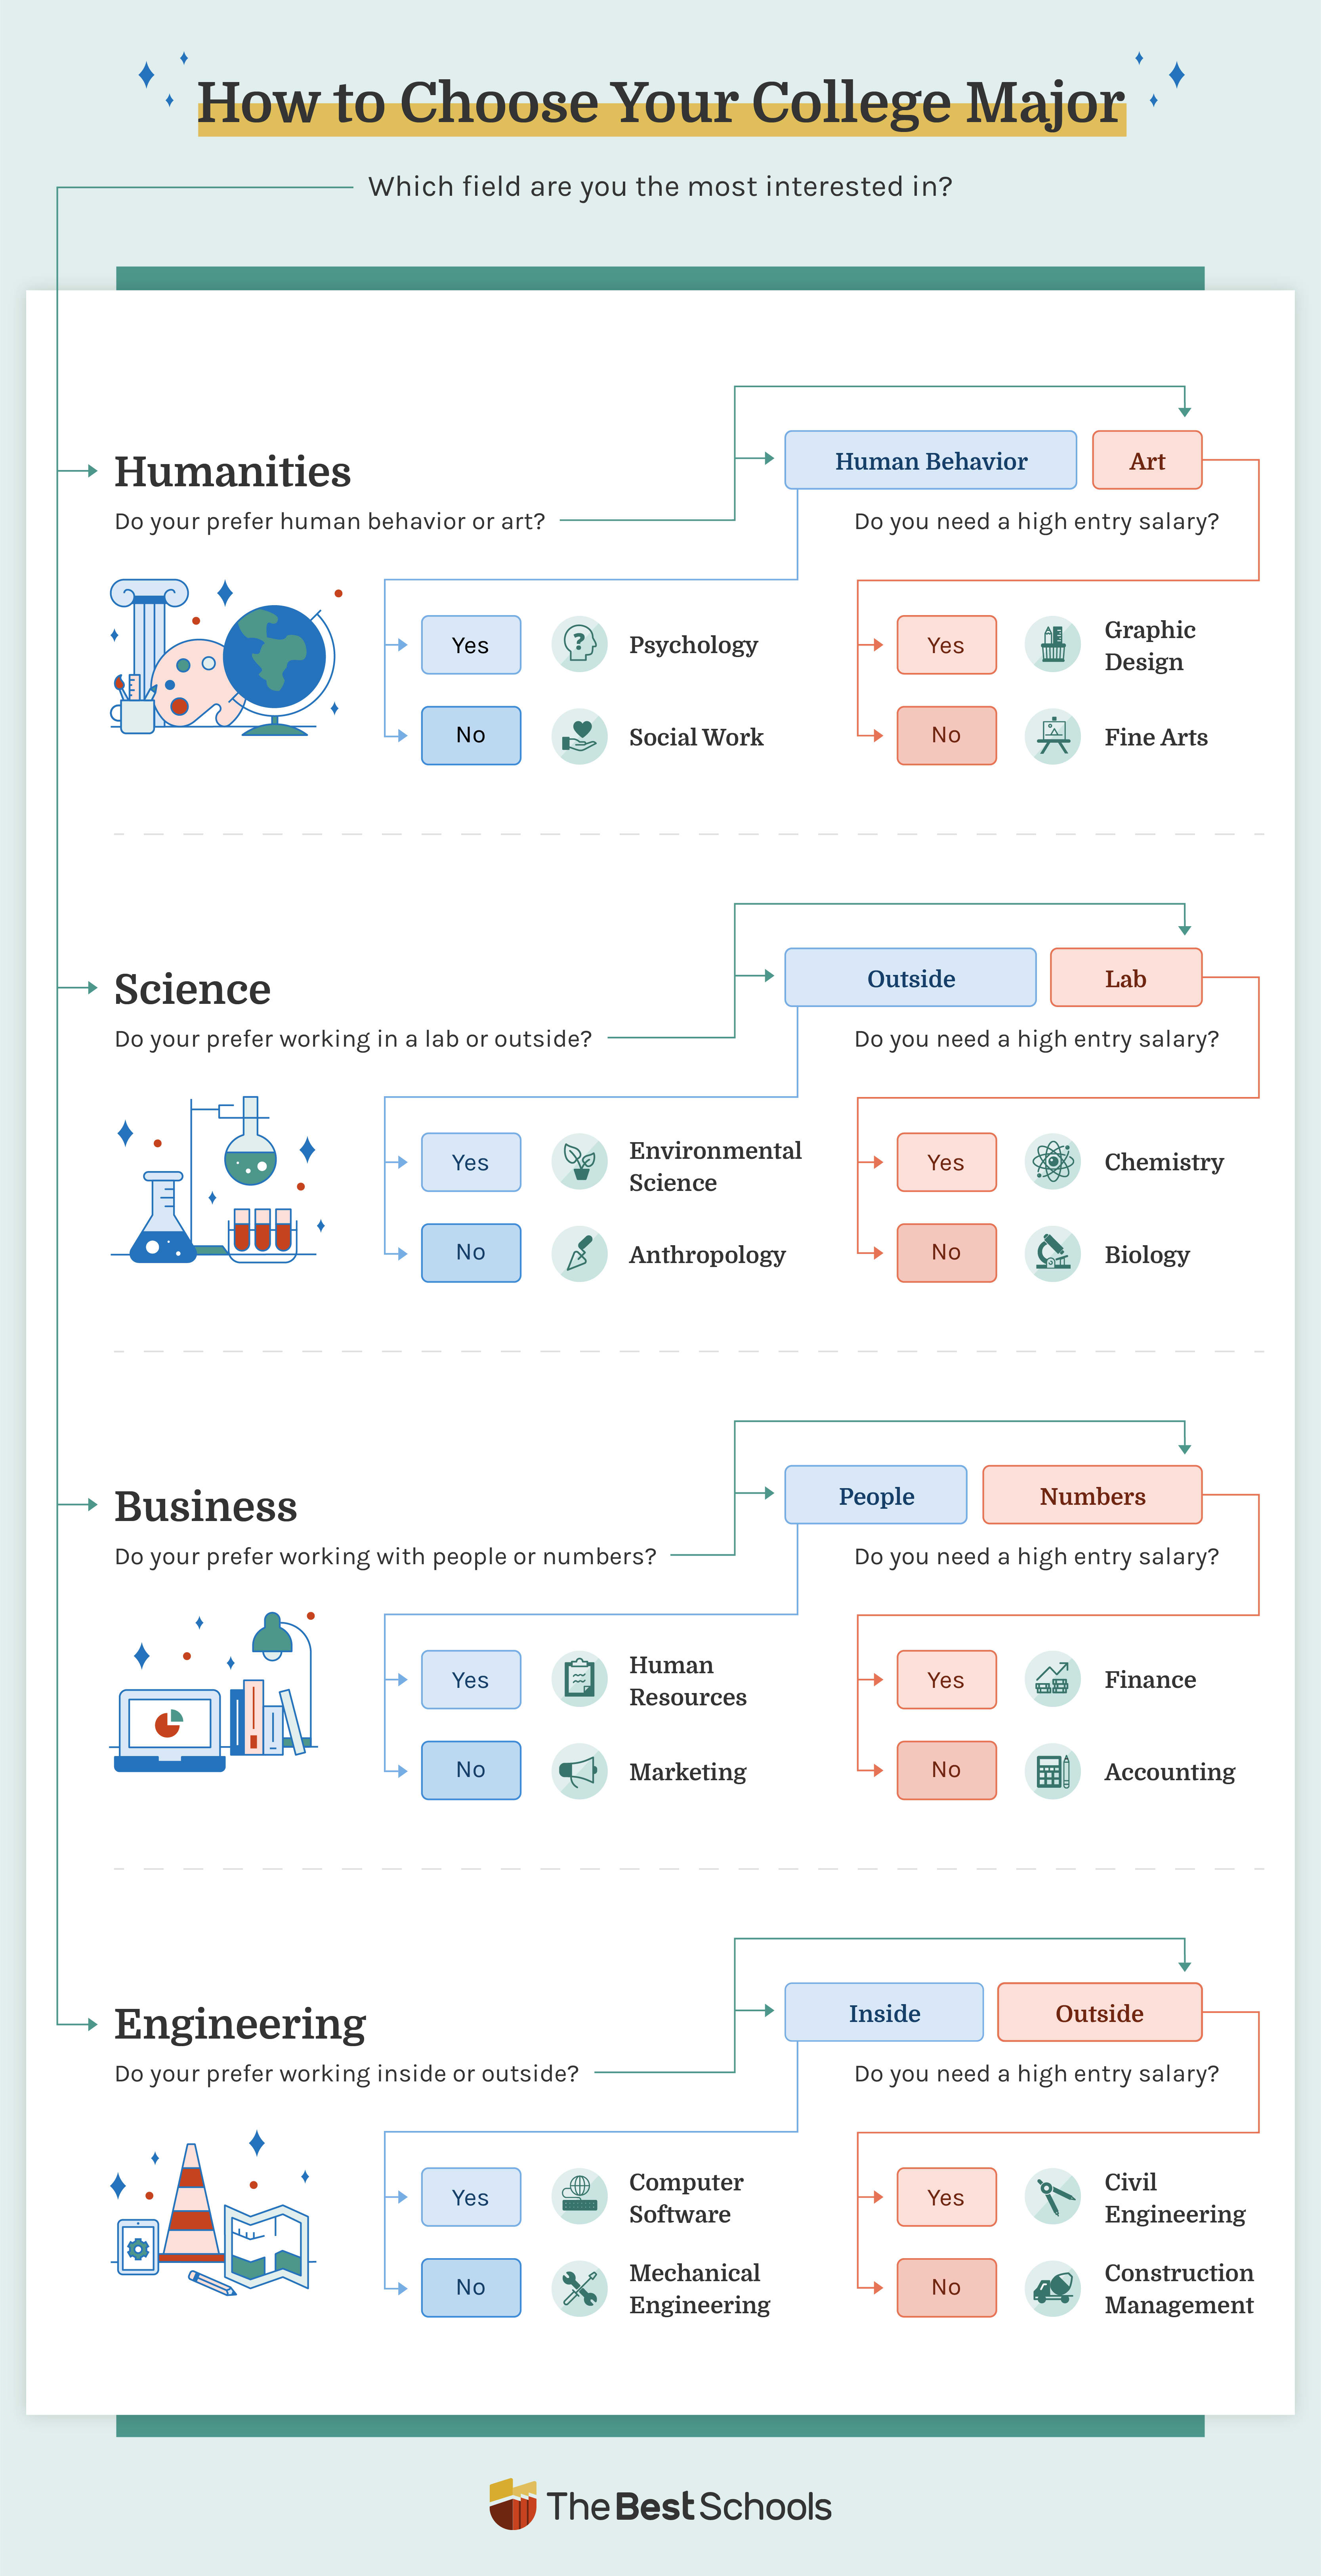 Image of a decision tree infographic that helps students find their major